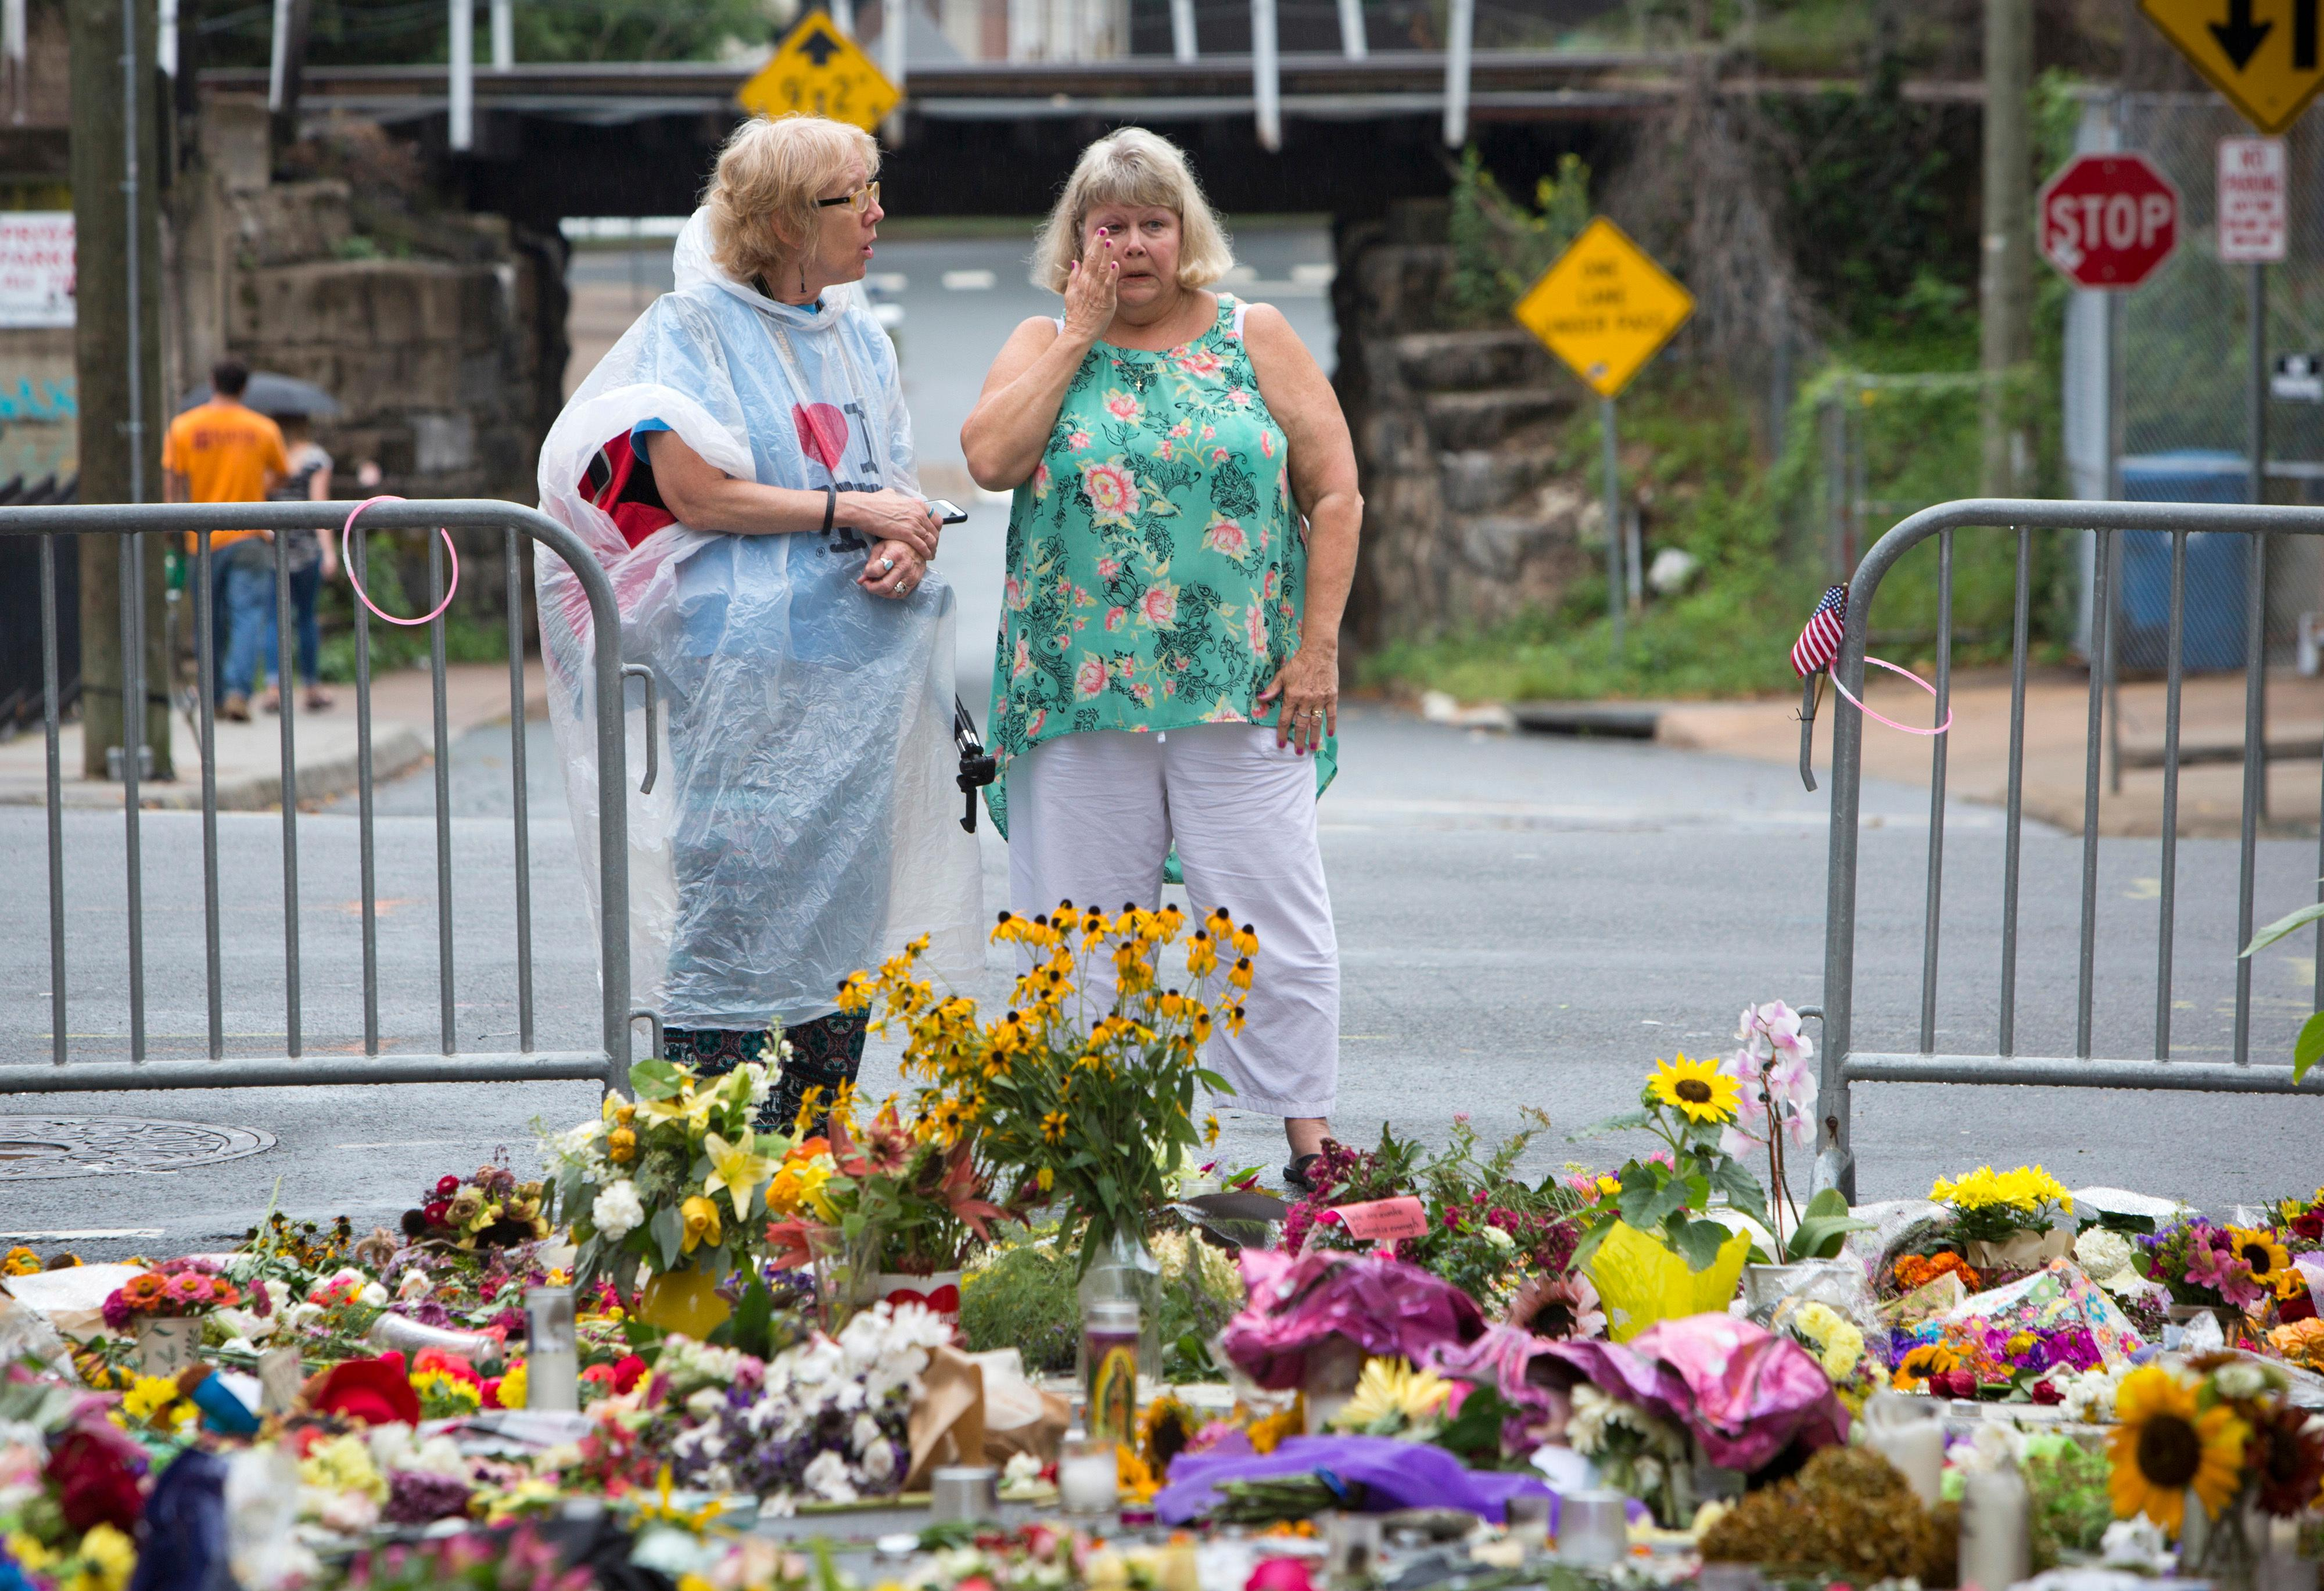 Women visit a memorial at 4th and Water Streets, Tuesday, Aug. 15 2017,  in Charlottesville, Va., where Heather Heyer was killed when a car rammed into a group of counterprotesters last weekend. Alex Fields Jr., is charged with second-degree murder and other counts after authorities say he rammed his car into a crowd of counterprotesters Saturday, where a white supremacist rally took place.  (AP Photo/Julia Rendleman)